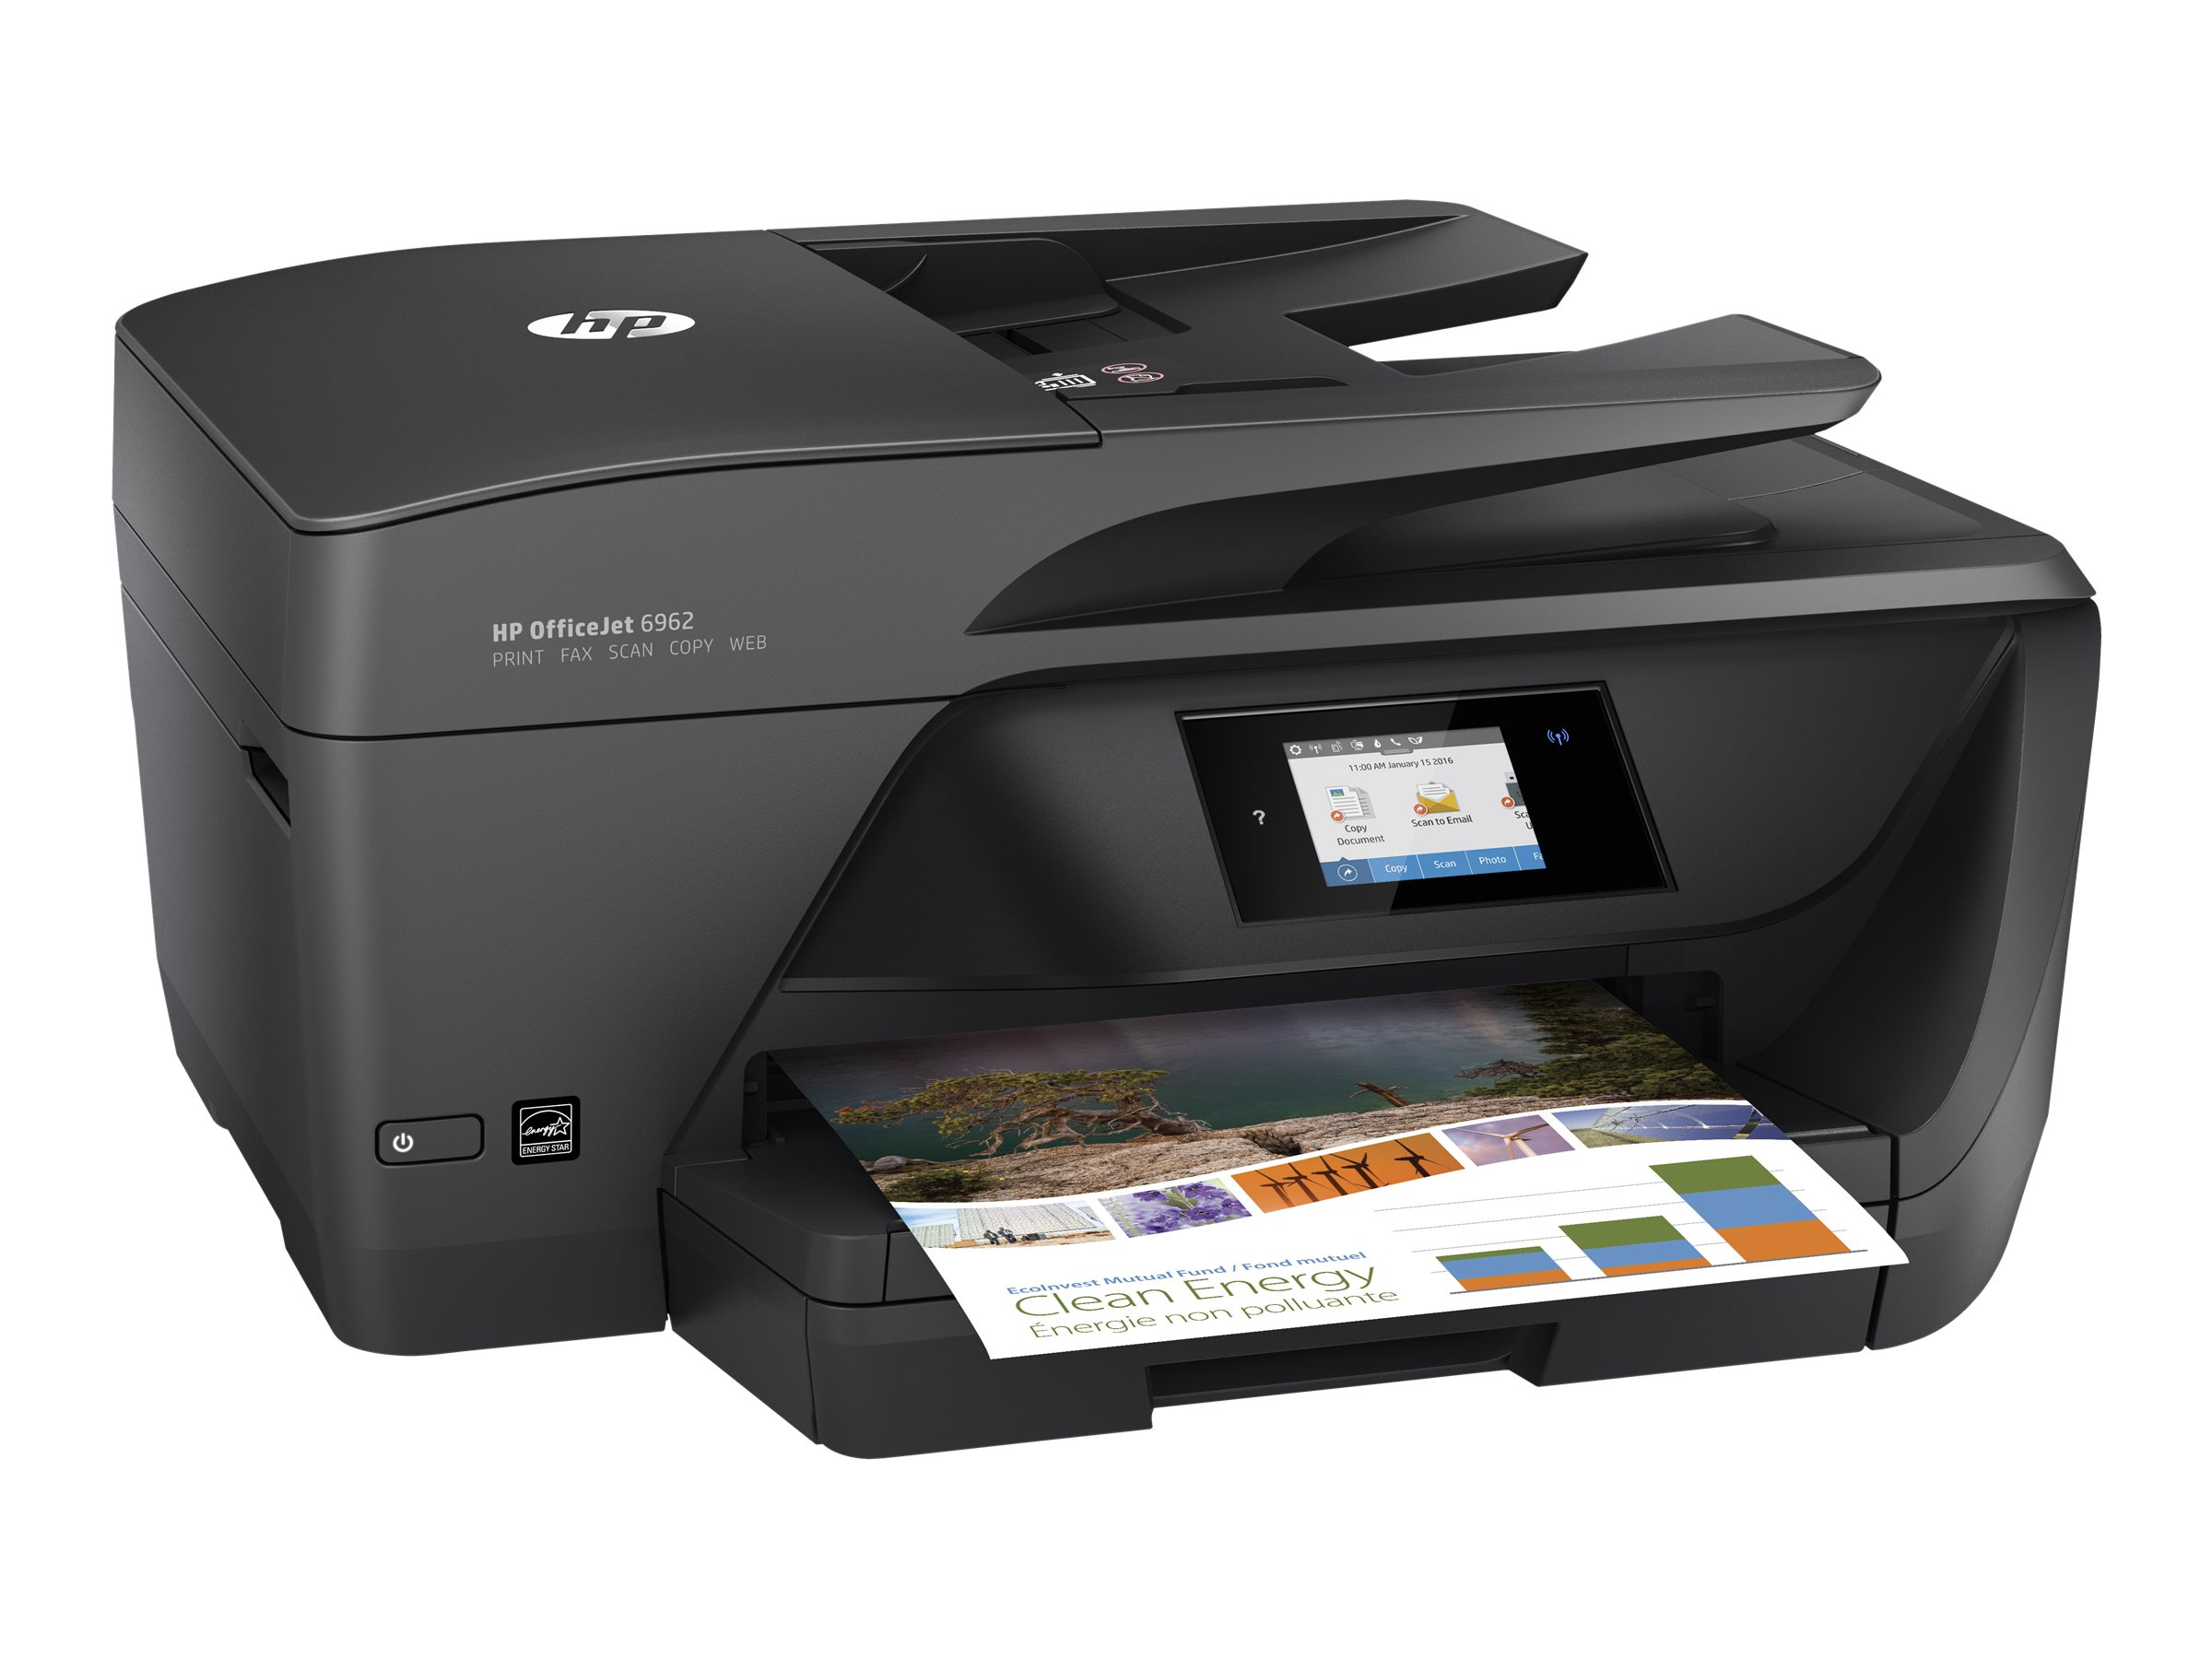 HP OFFICEJET 6962 DRIVER FOR MAC DOWNLOAD